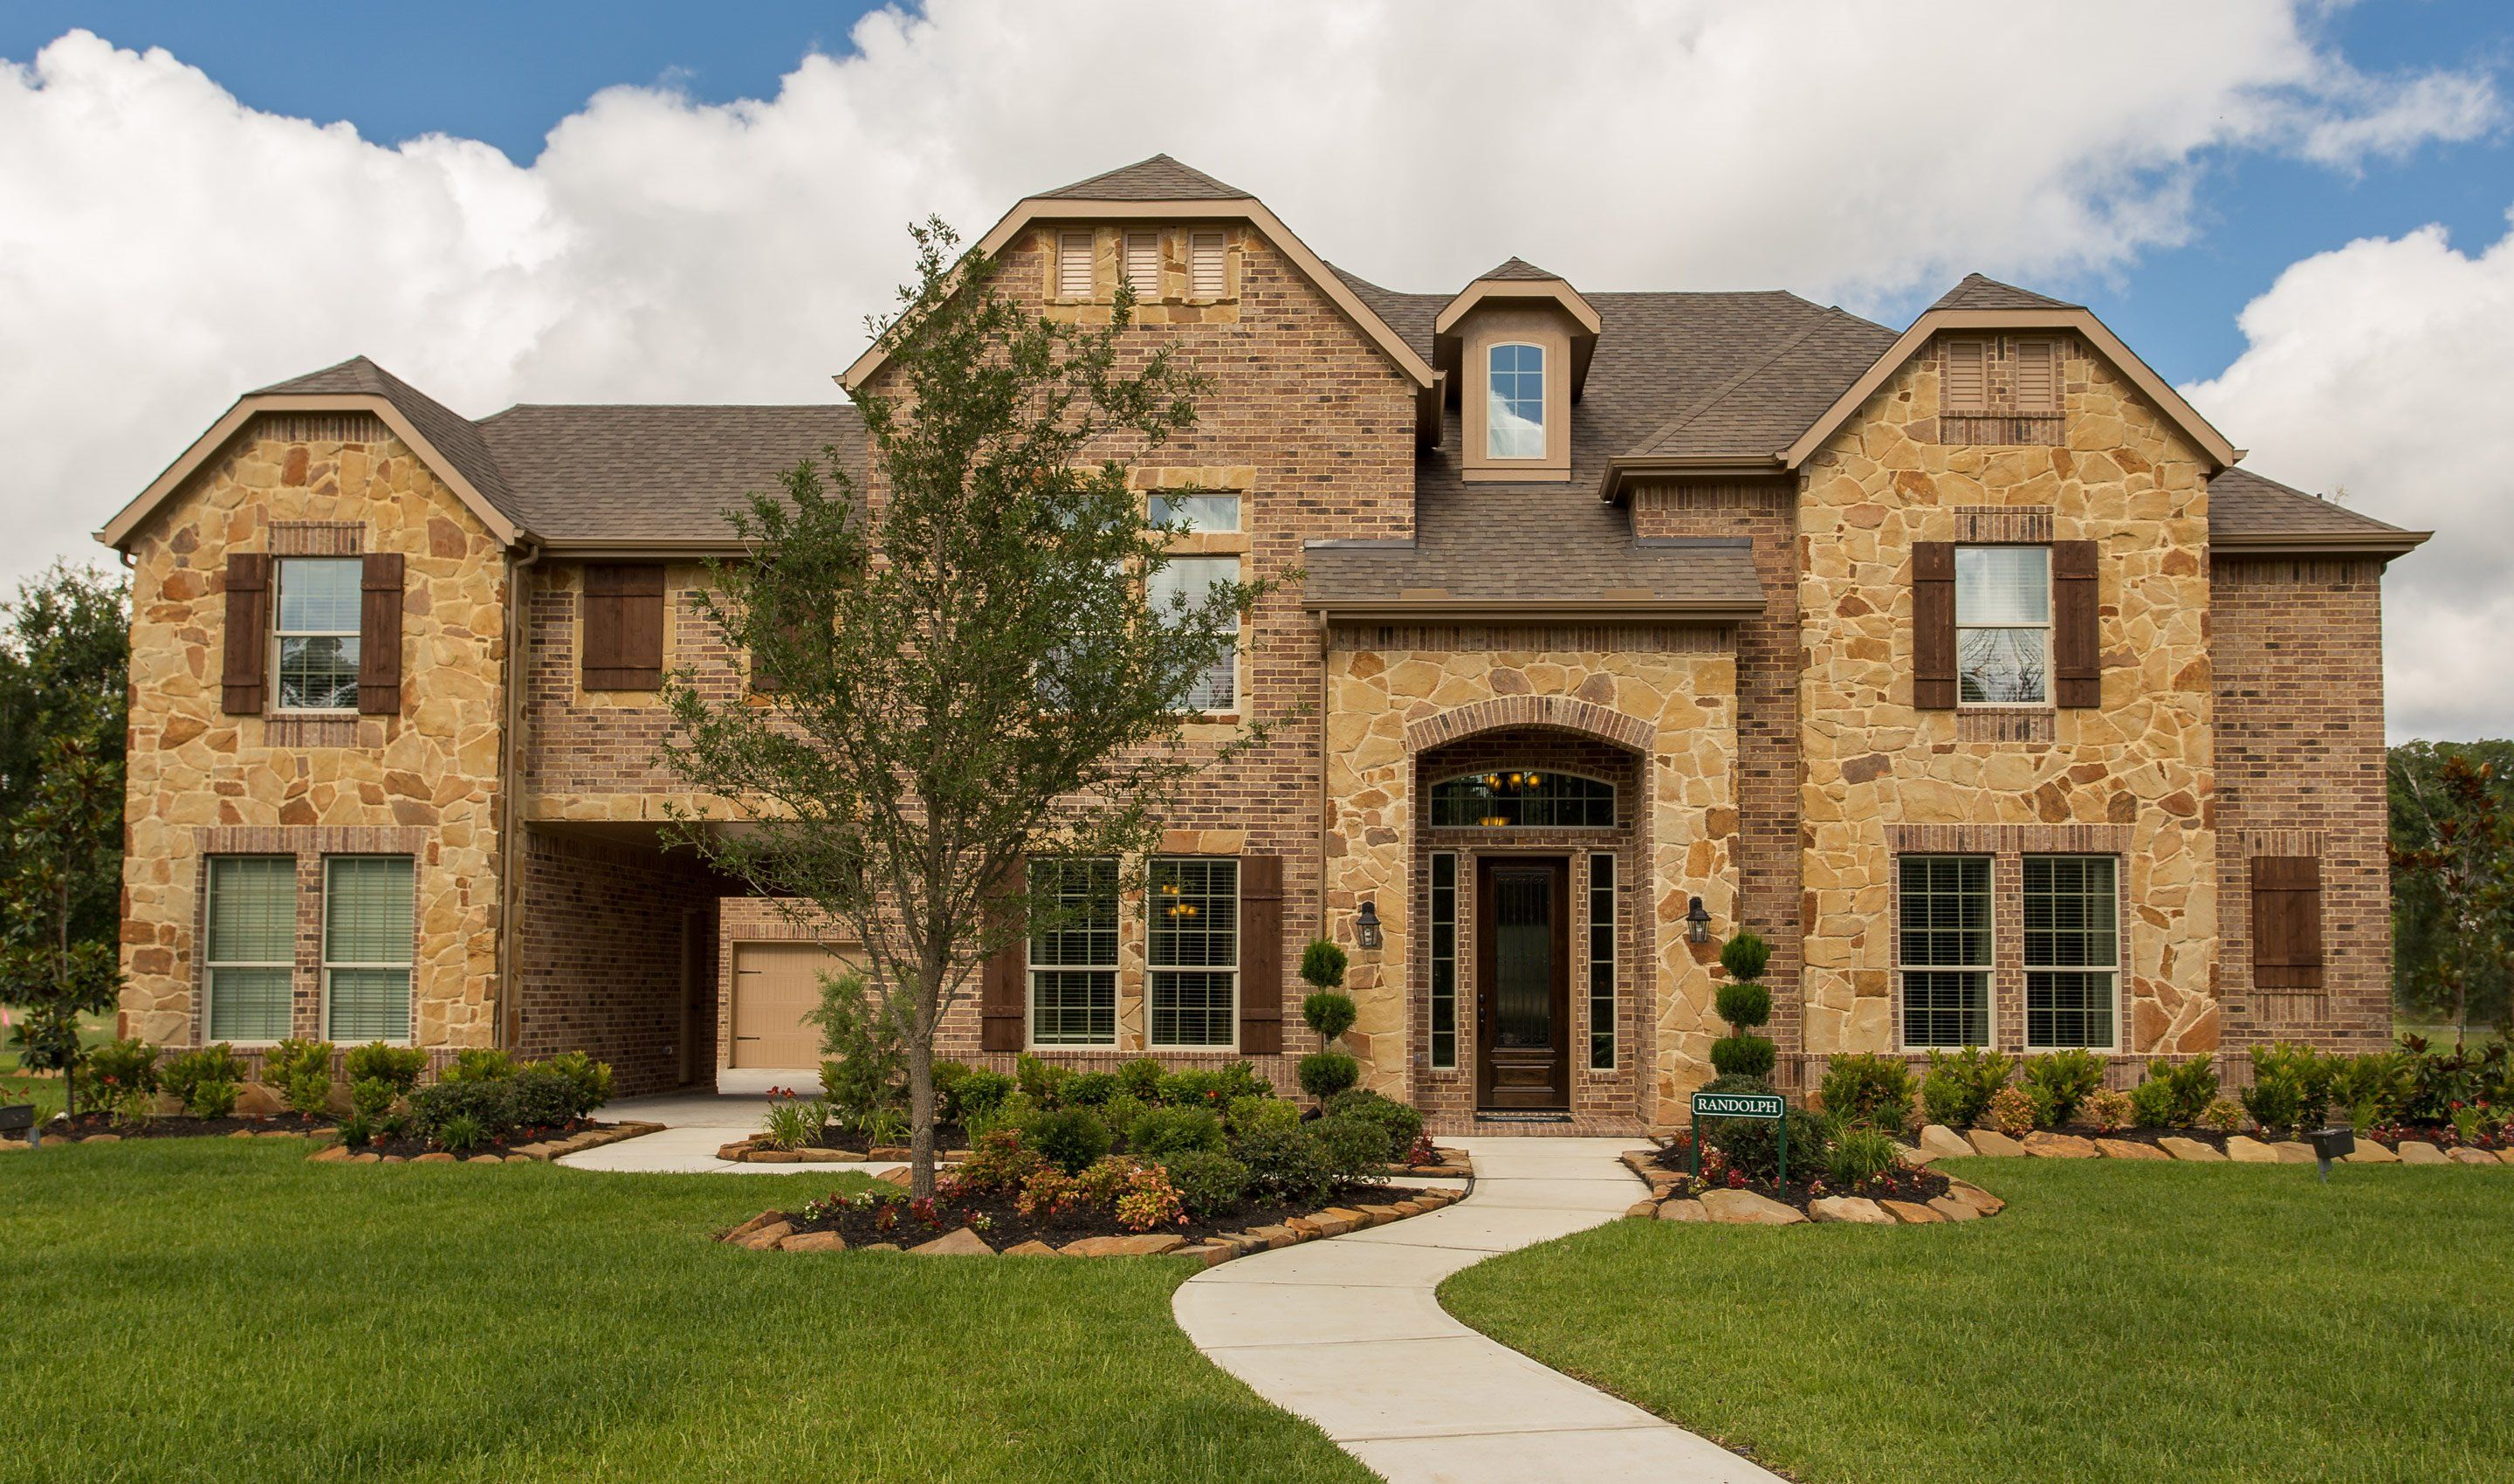 Best Kitchen Gallery: Creekwood Estates Is A Serene Picturesque Gated Munity Of Single of Largest Home In Texas on rachelxblog.com